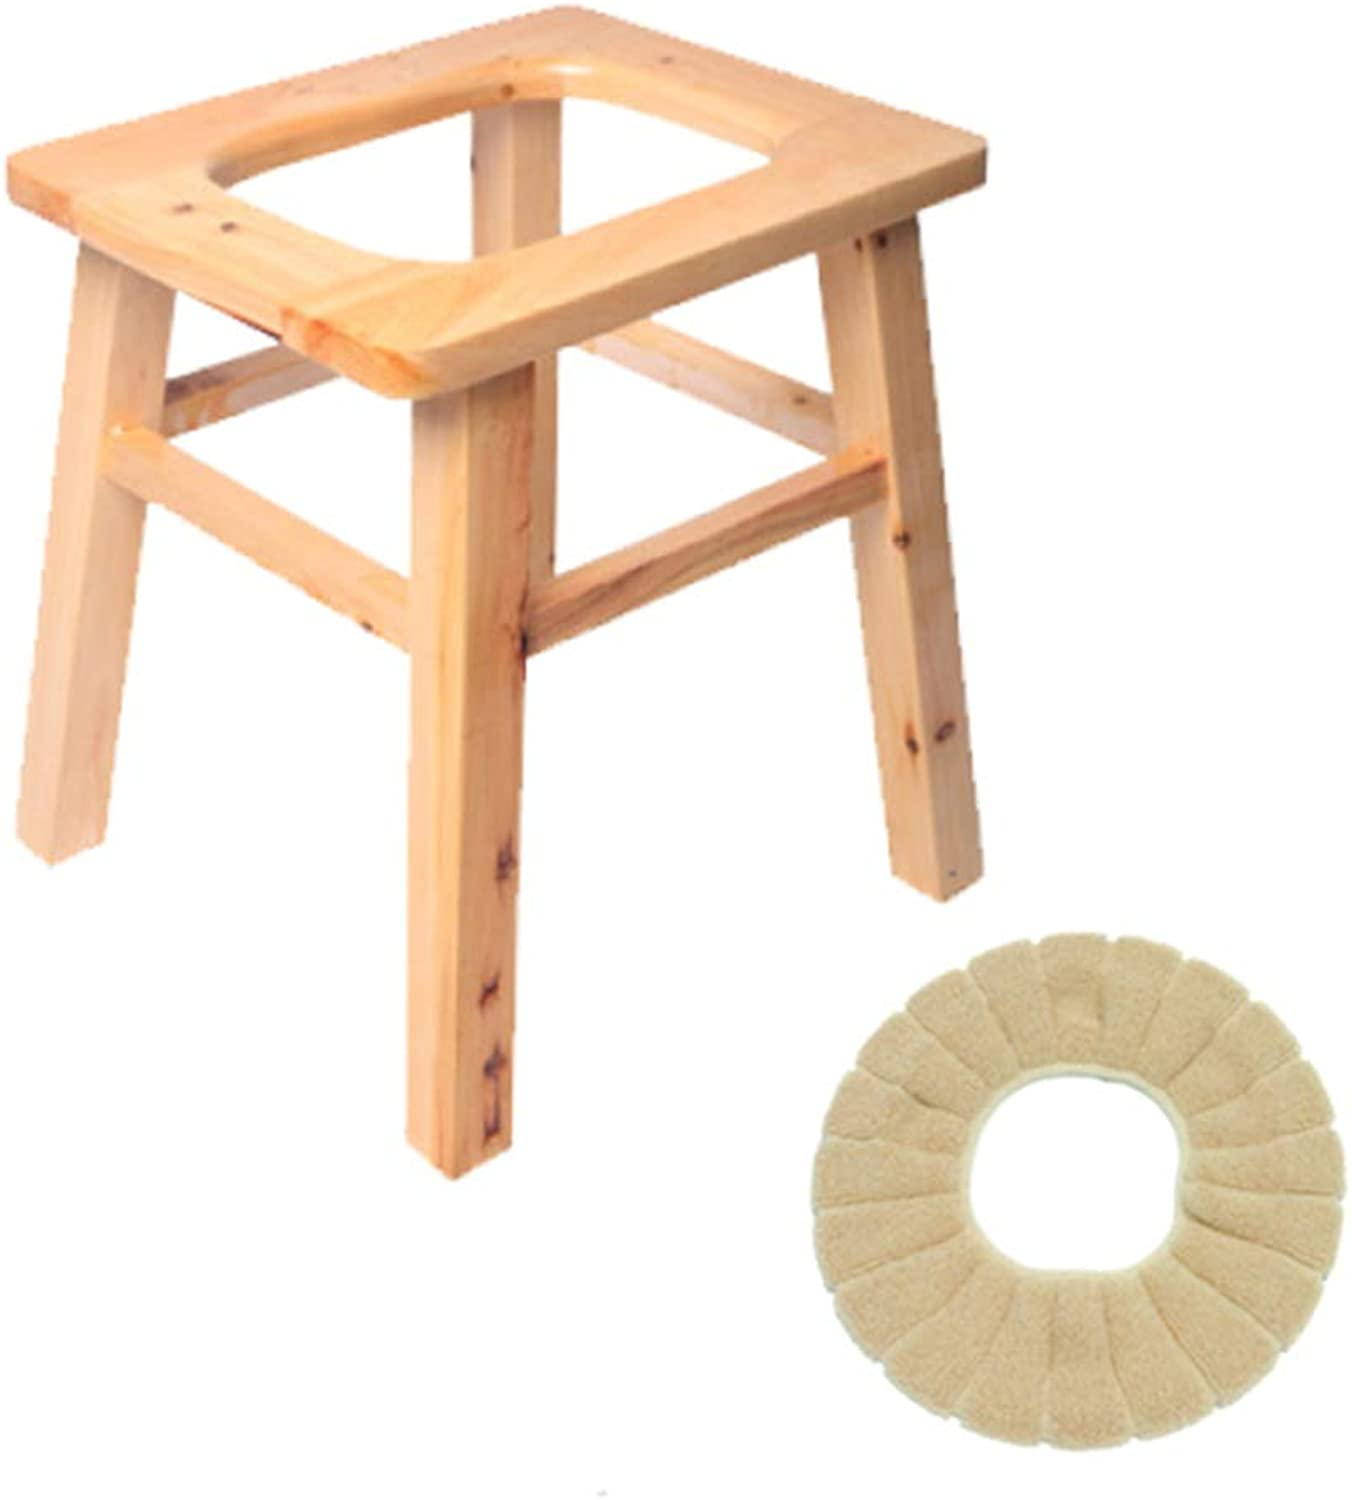 Old Toilet Chair Home Solid Wood Bathroom Stool Removable Elderly Toilet Adult Pregnant Commode Chair,WithoutBarrel-High25CM